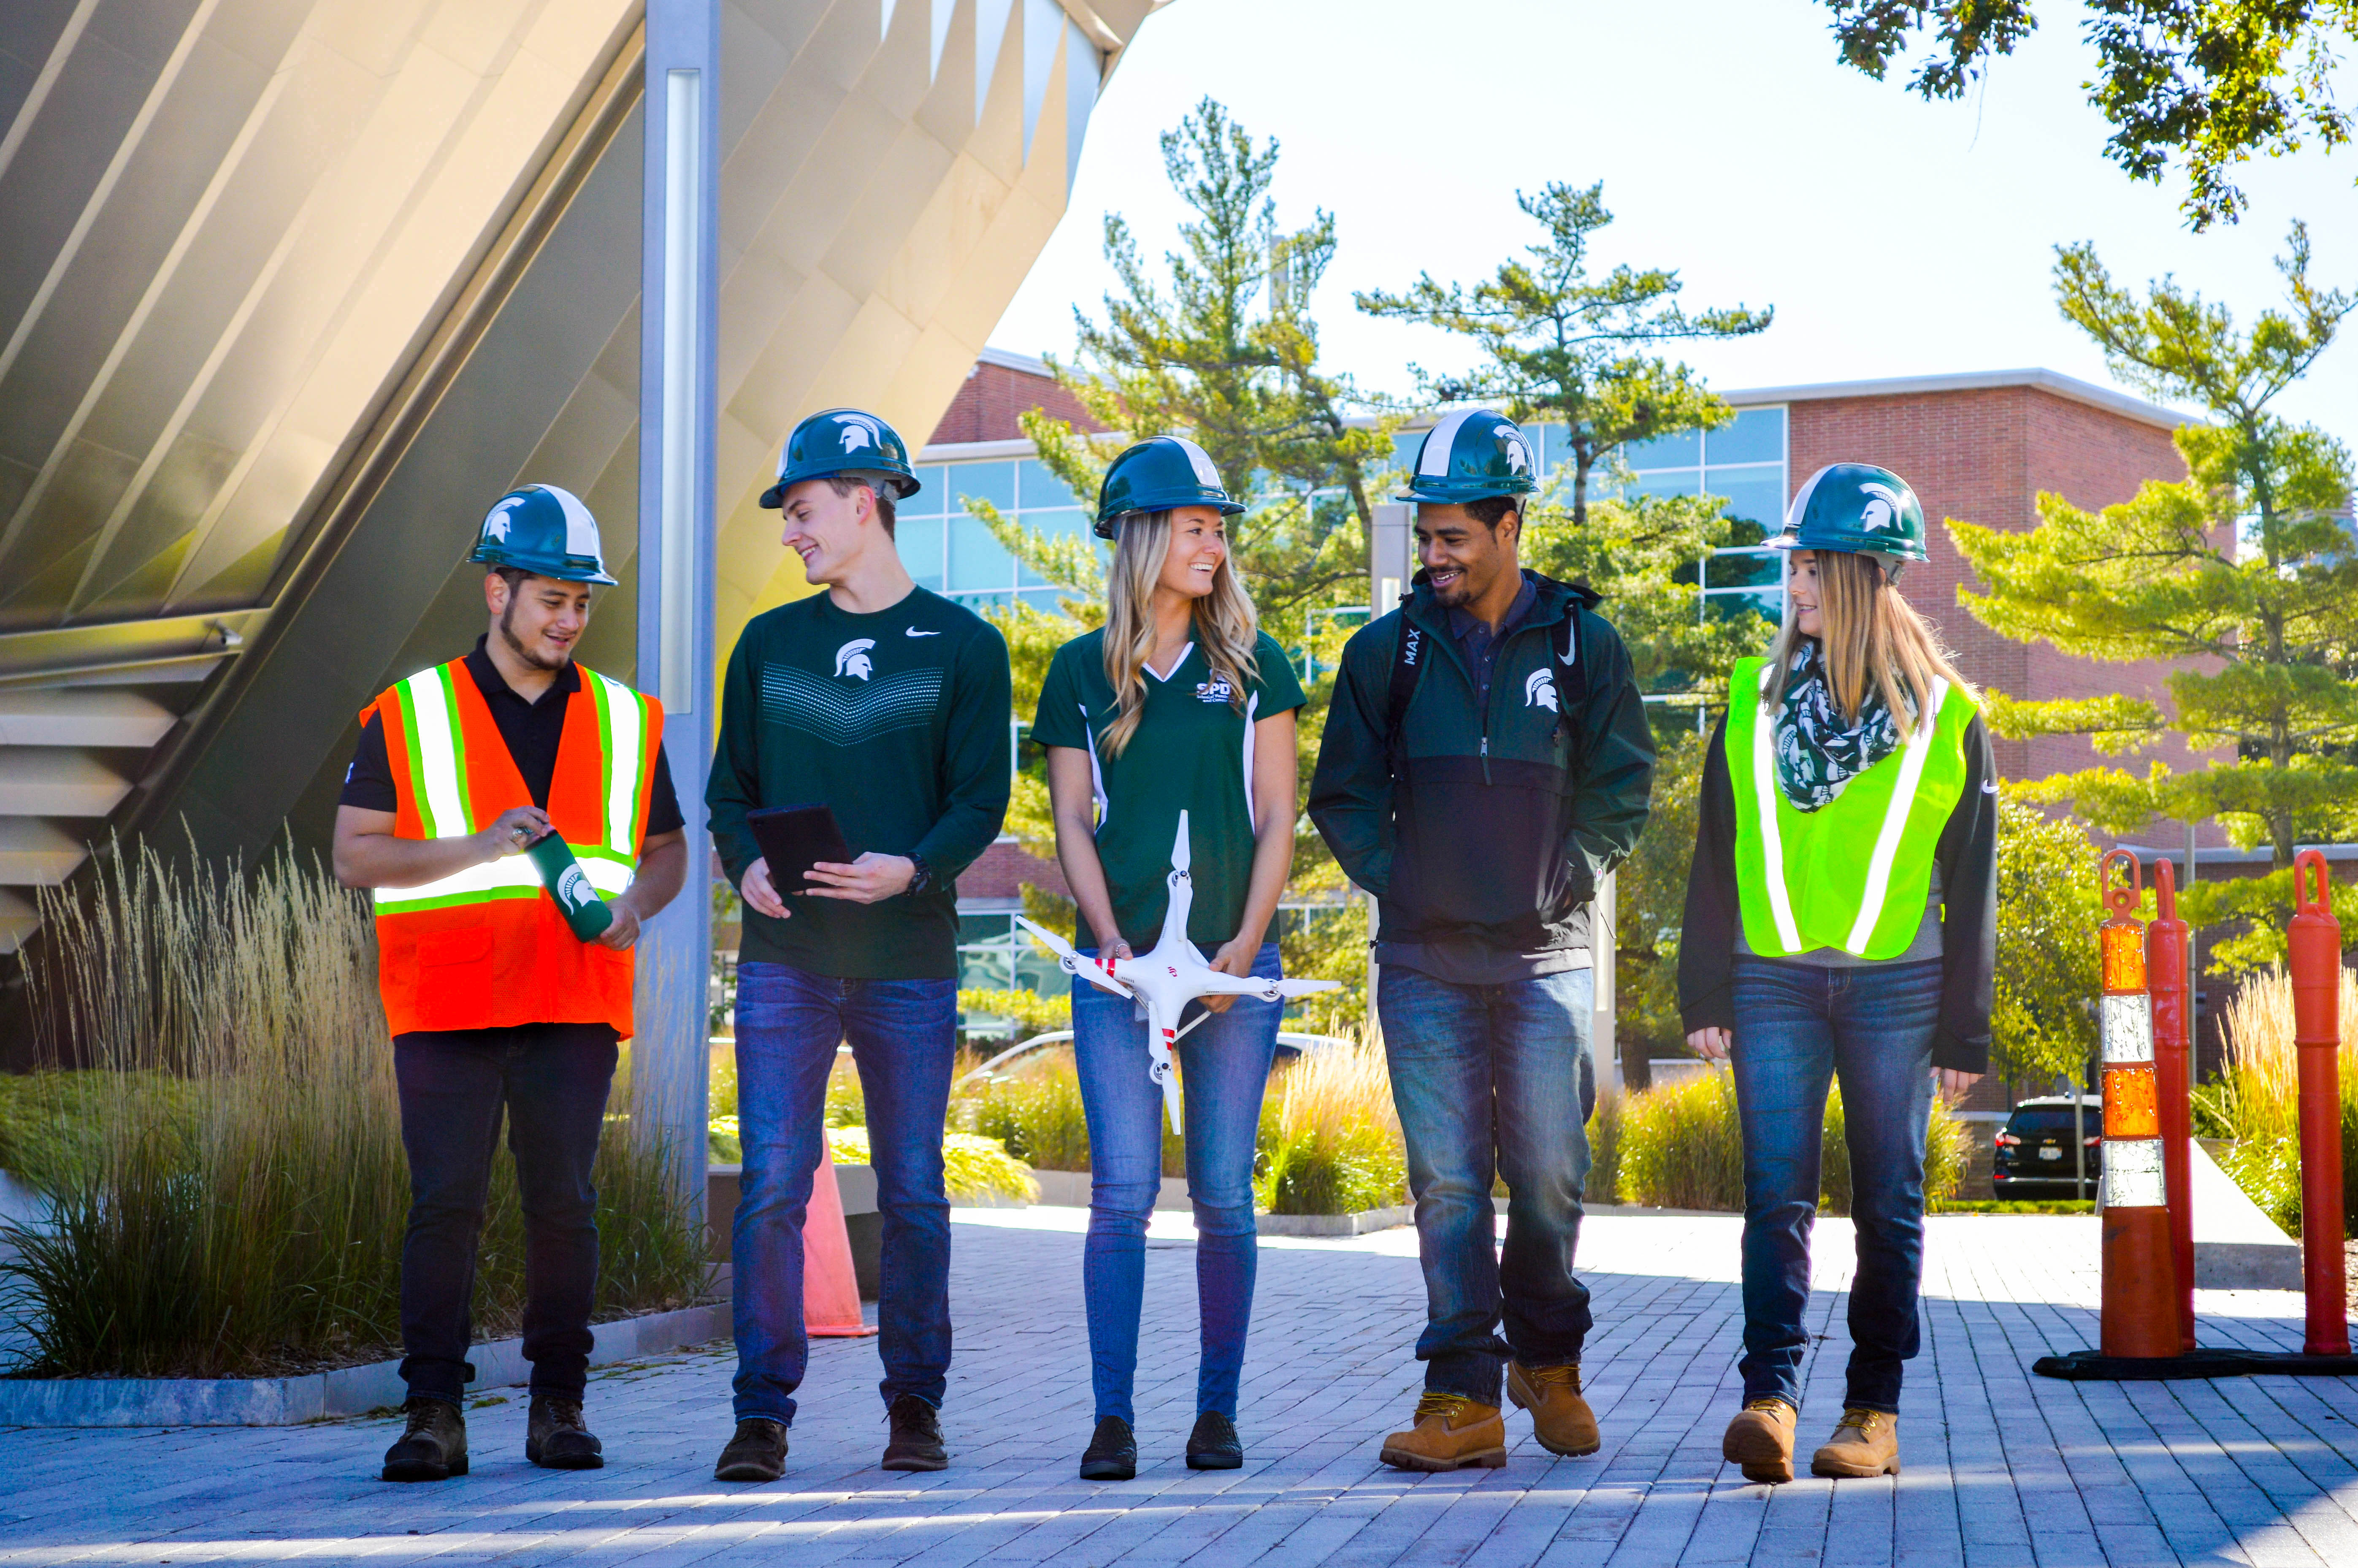 Construction management students walking together and talking.